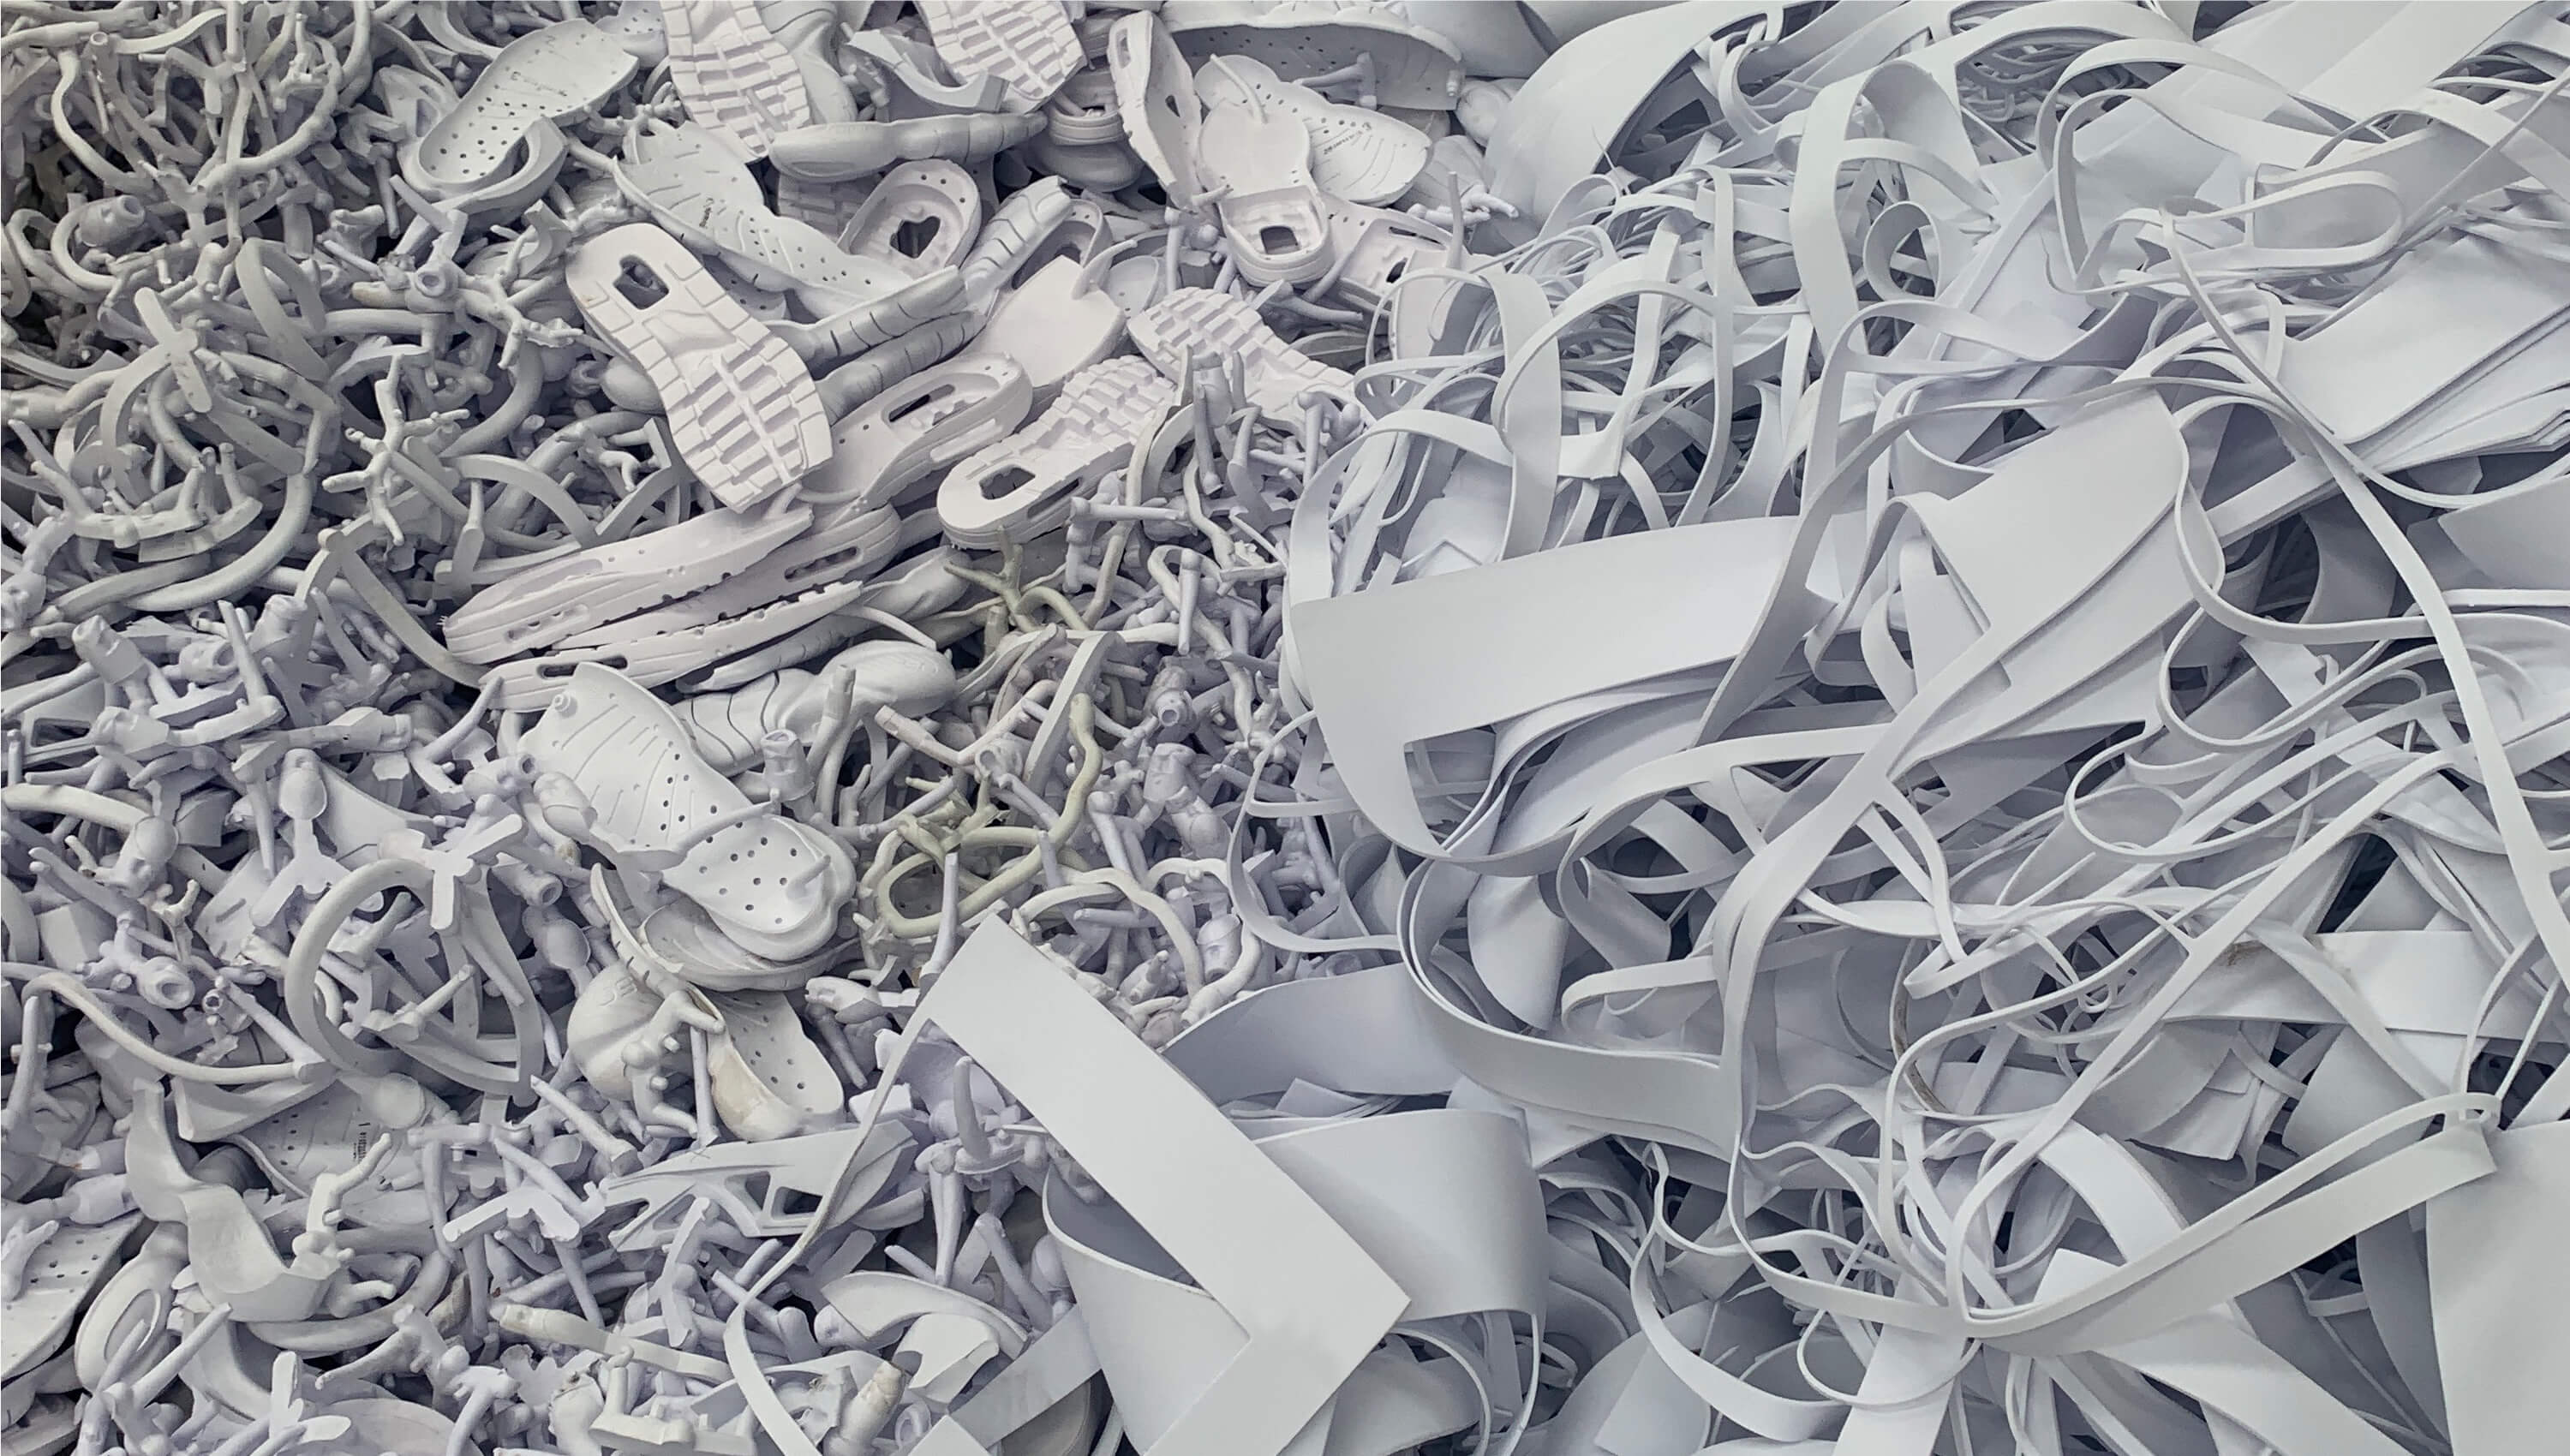 A pile of colorless materials that can be recycled into Nike Grind